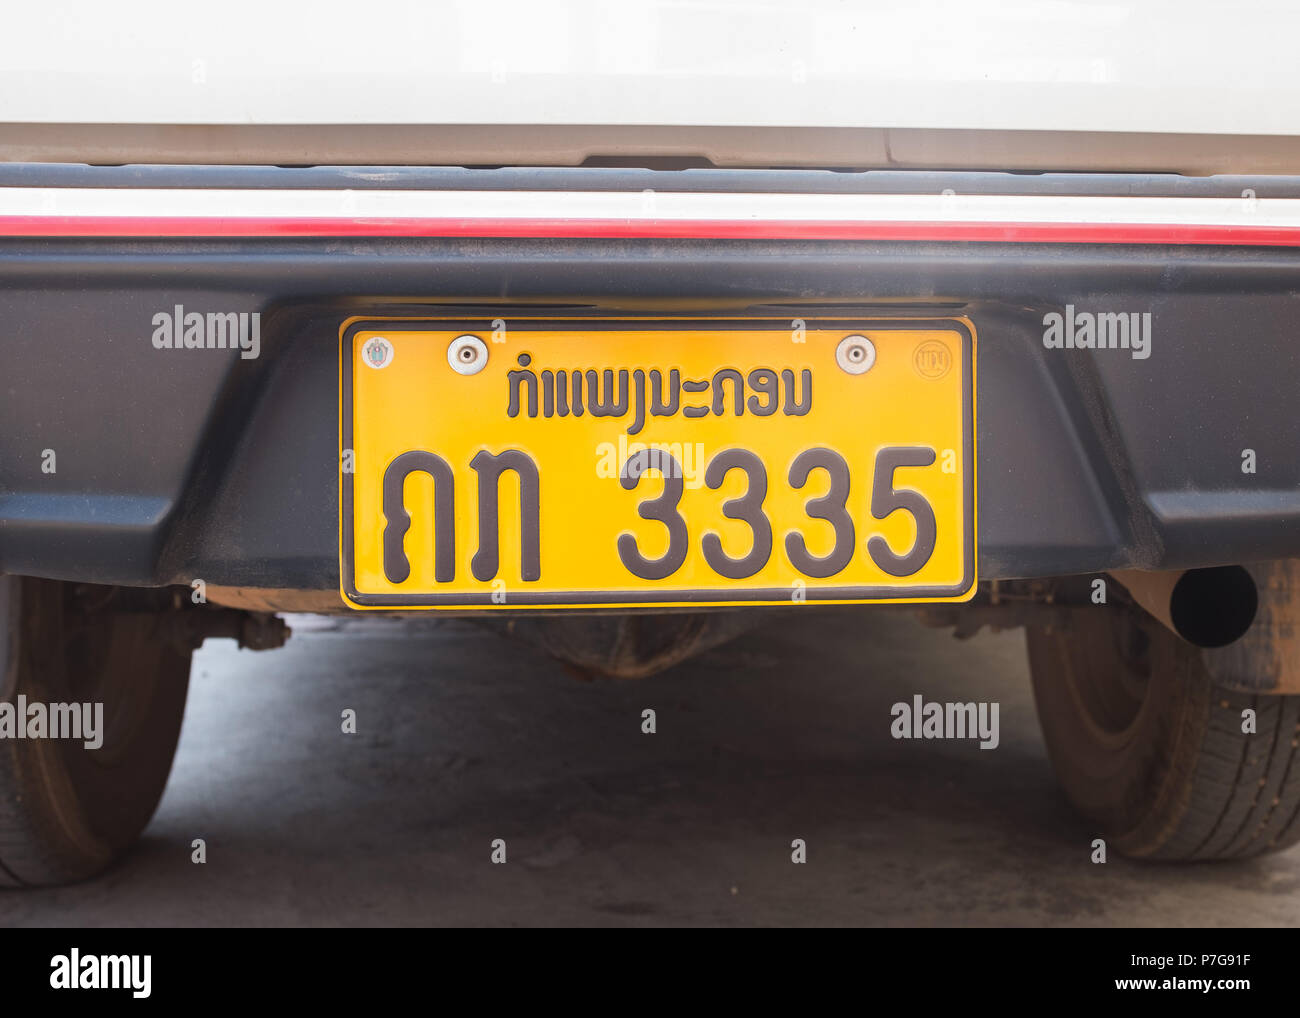 close-up of number plate of  car in Vientiane, Laos, - Stock Image